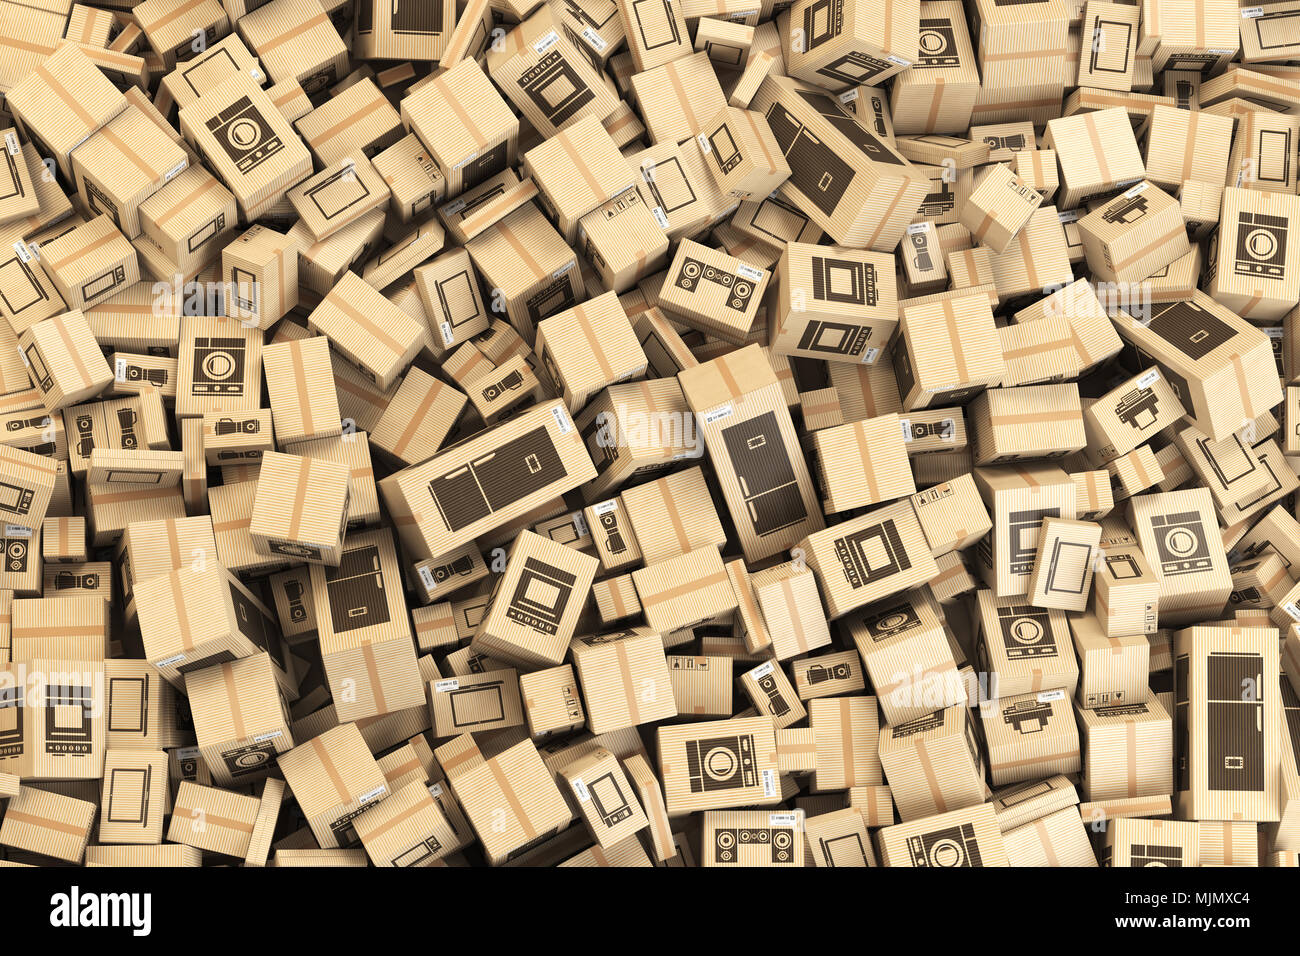 Background from cardboard boxes with household kitchen appliances ...